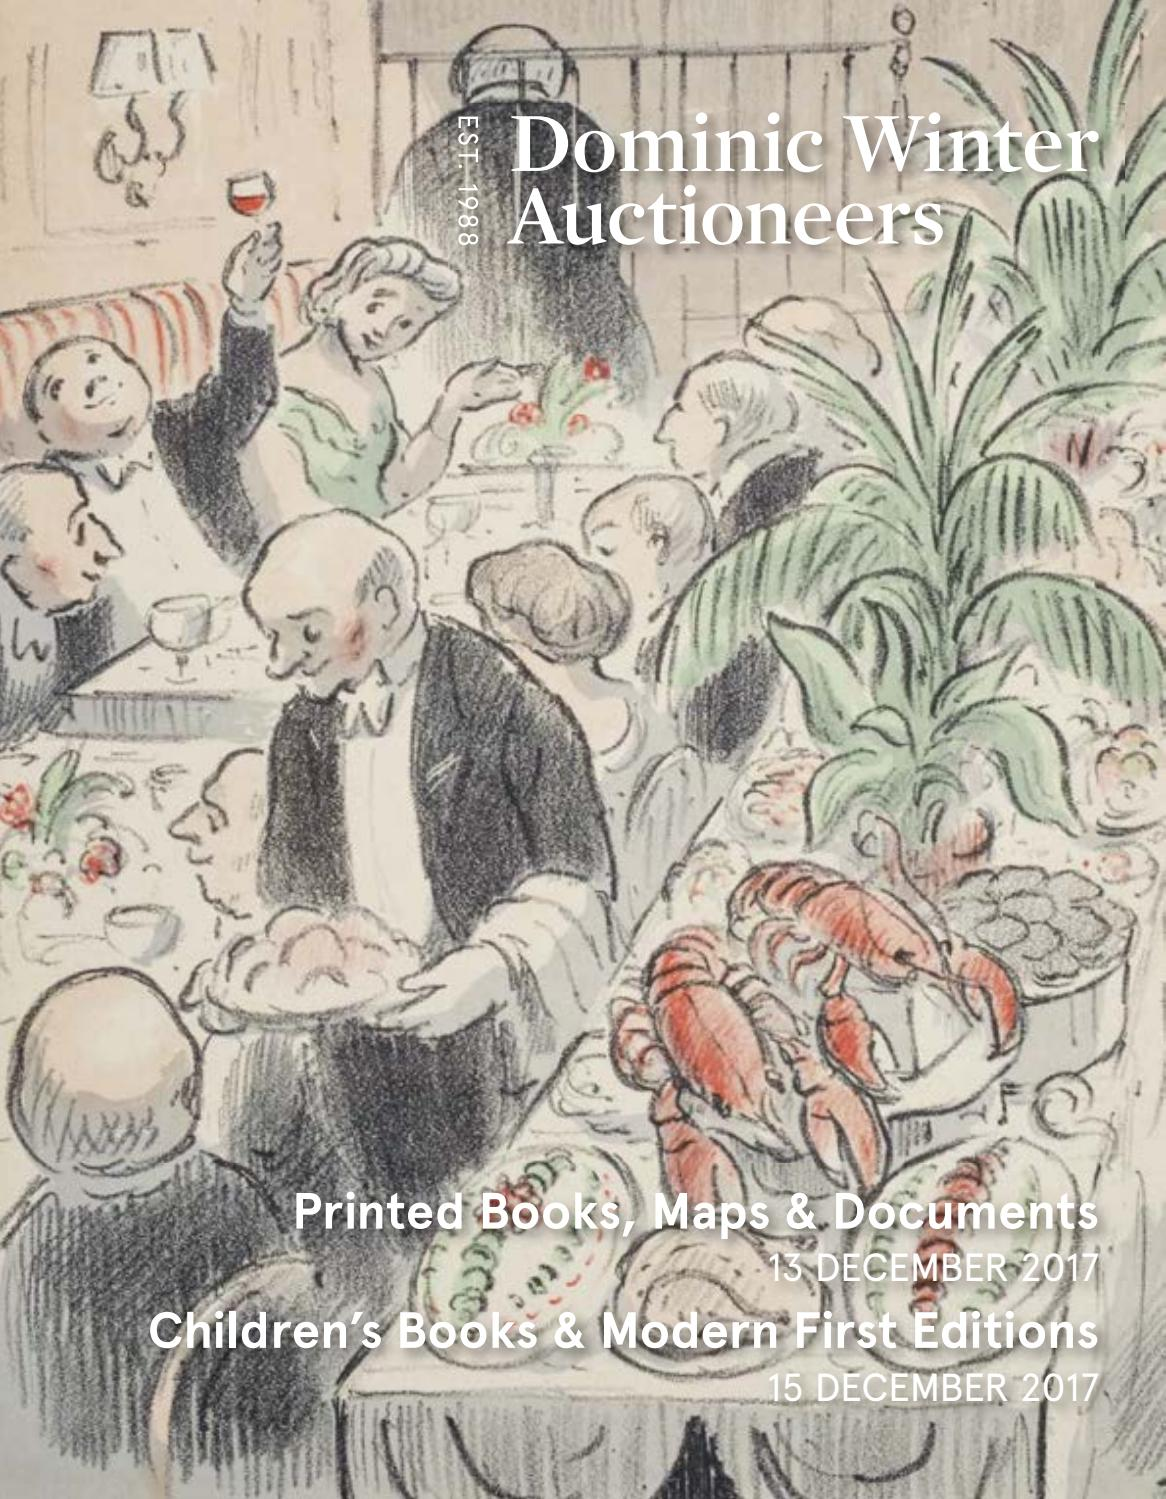 High Quality Dominic Winter Auctioneers By Jamm Design Ltd   Issuu Great Pictures